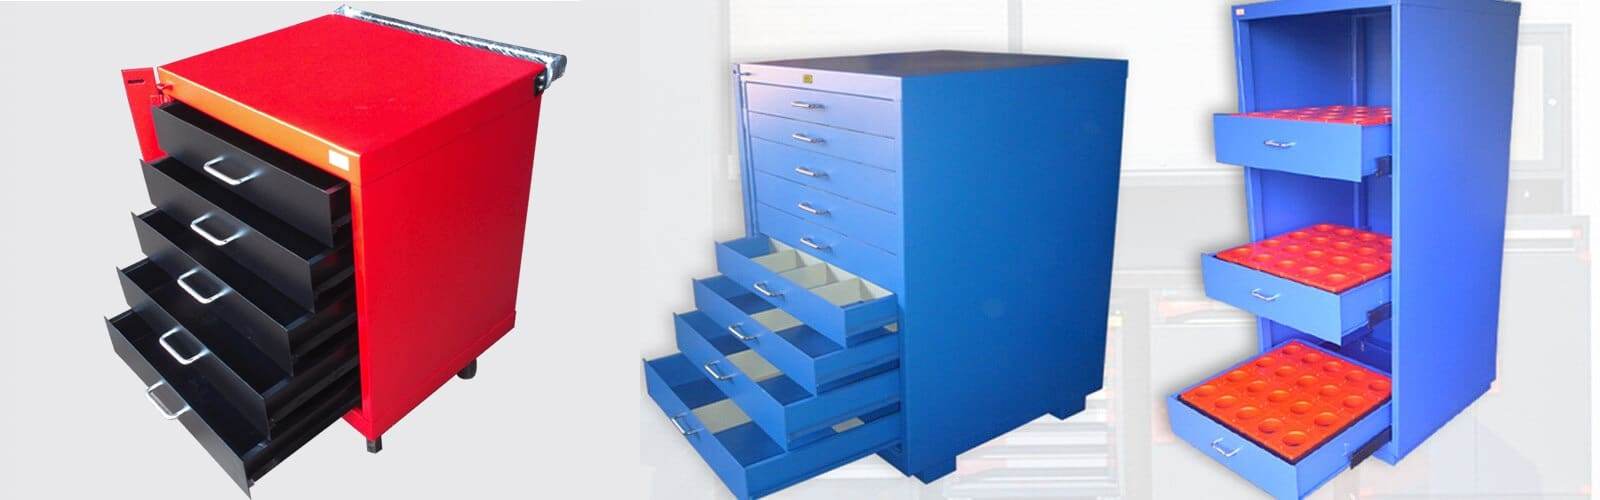 Industrial Tool Cabinet Manufacturer in Ahmedabad, India